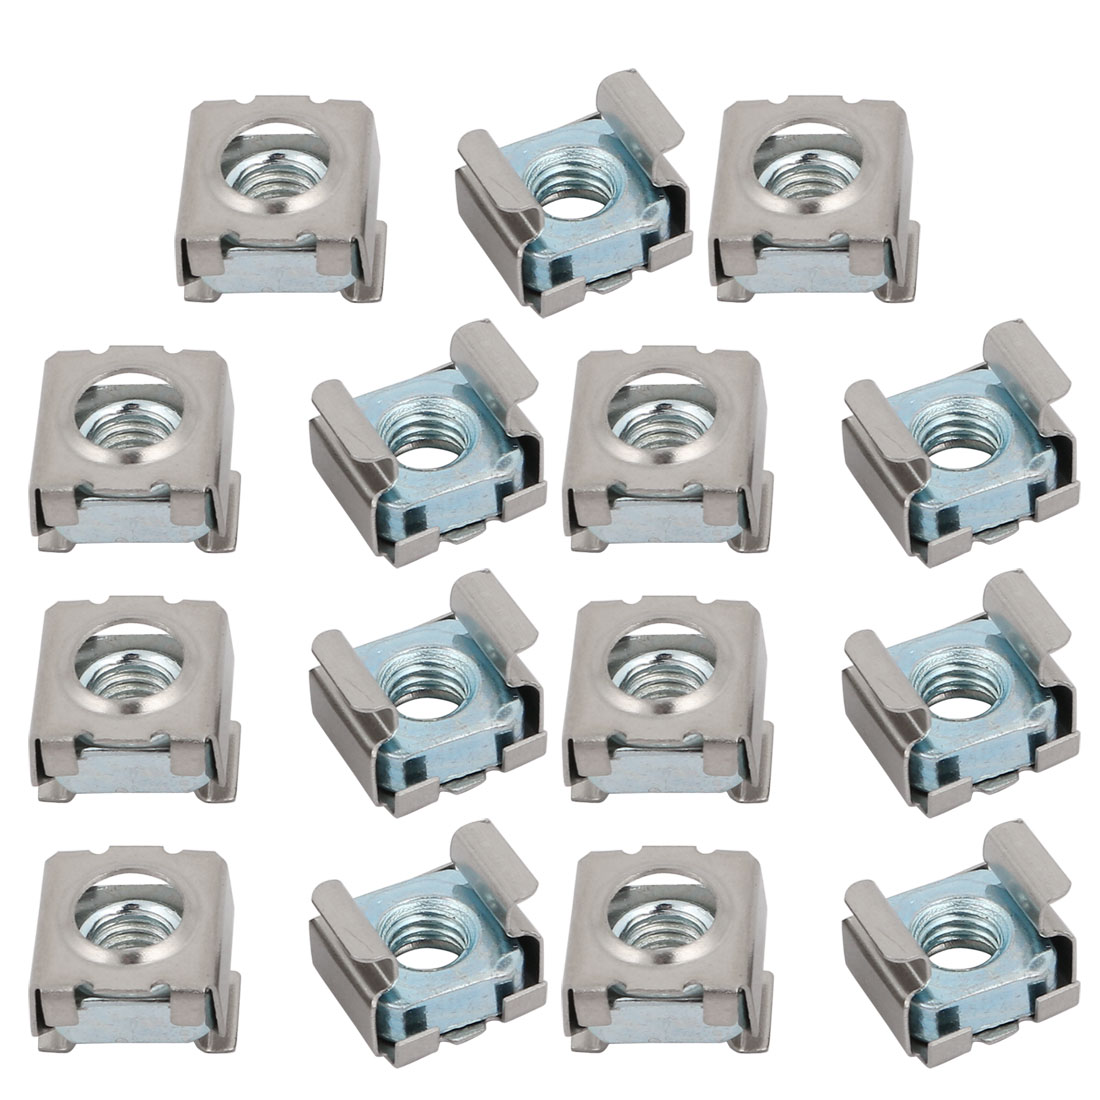 15pcs M6 Carbon Steel Zinc Plated Cage Nut for Server Shelf Cabinet